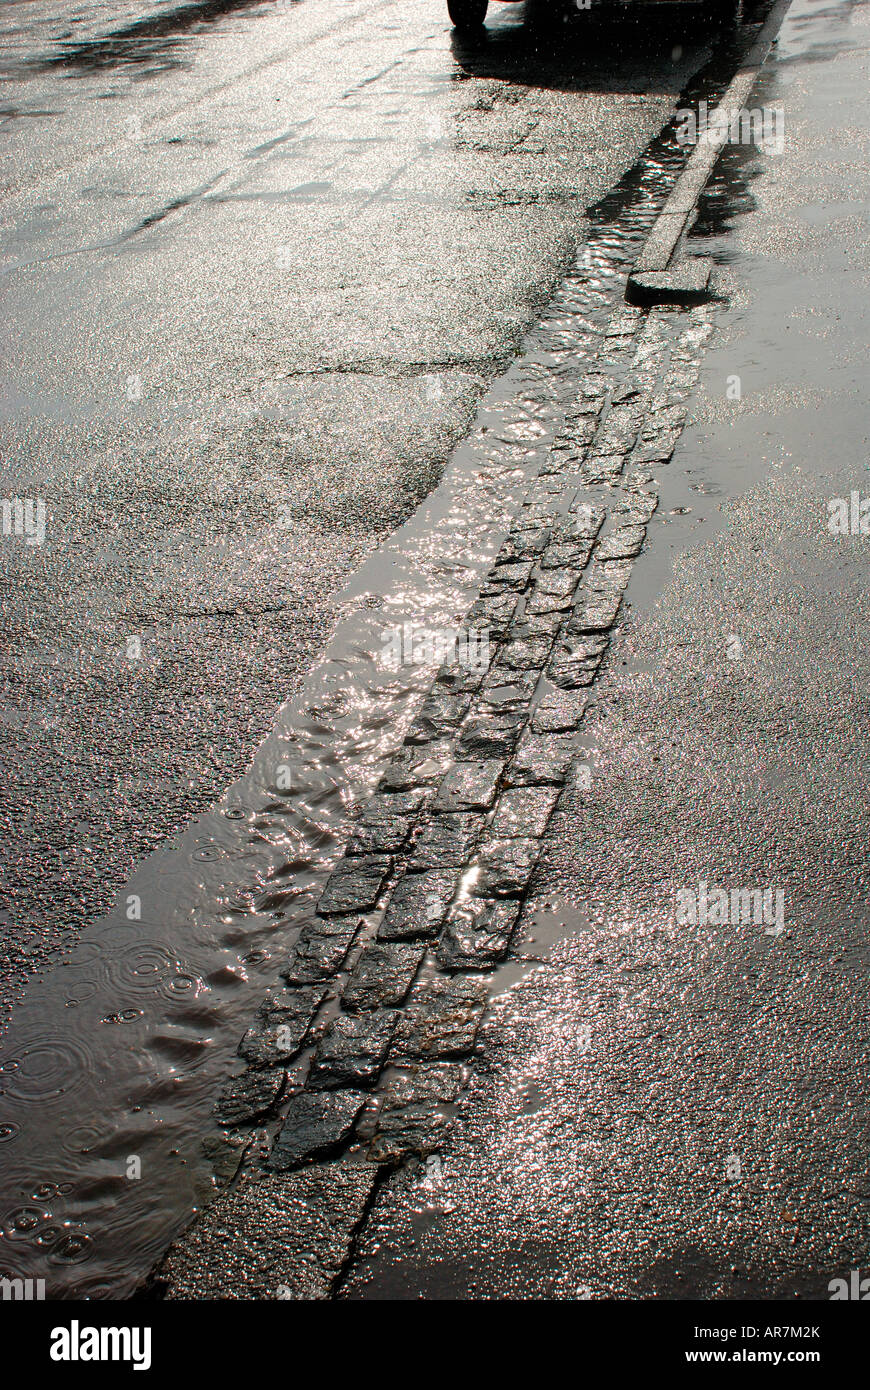 Rain On Street With Water Flowing In Gutter Stock Photo Alamy